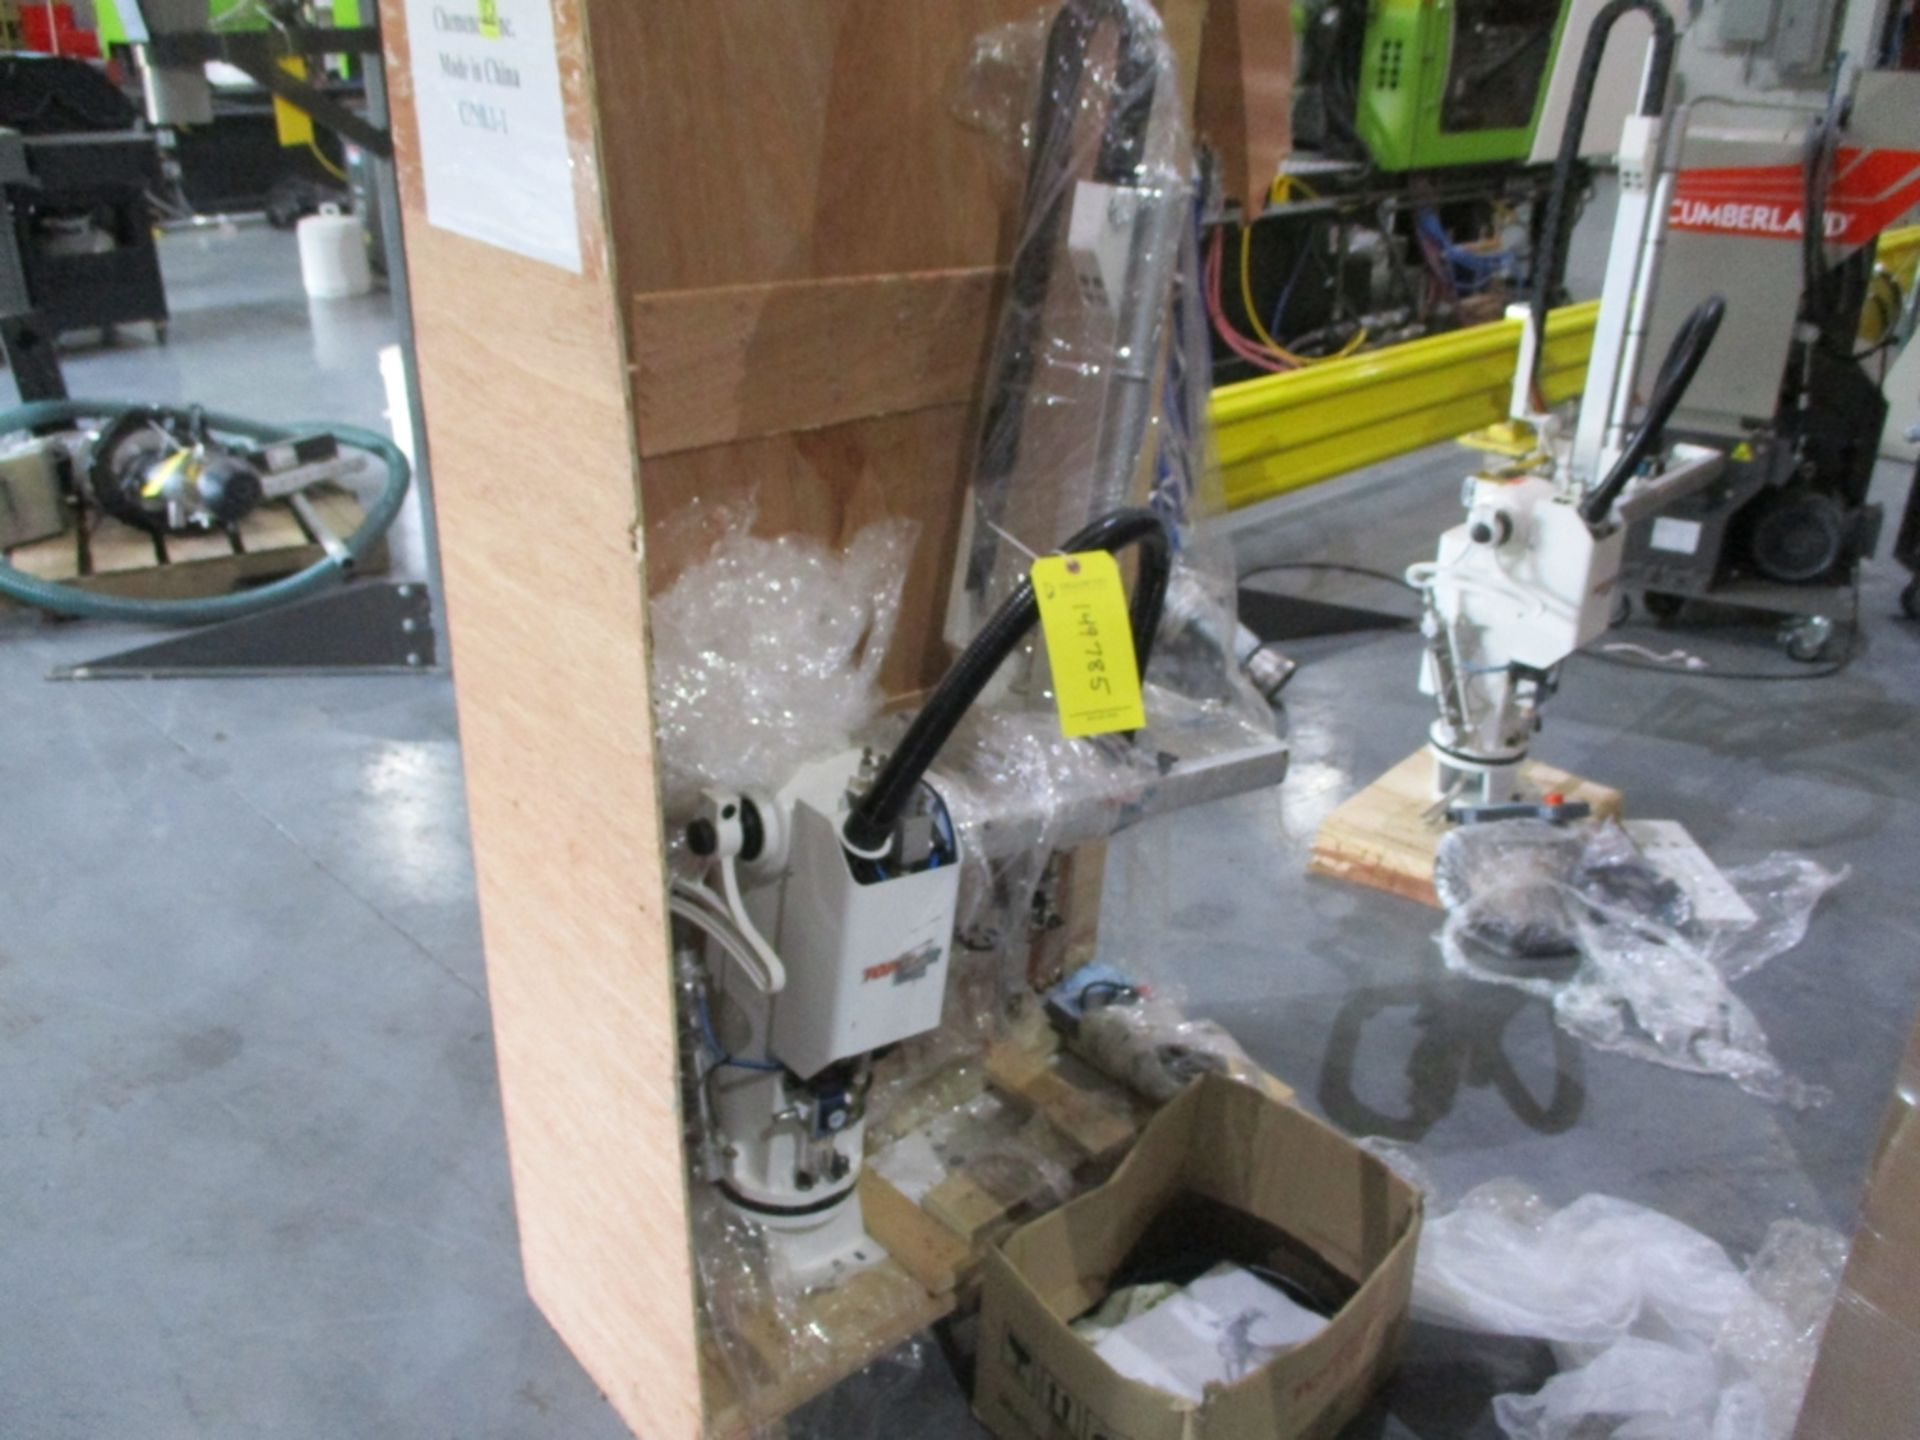 Lot 1024 - Topstar Swing-Arm Robot - With Pendant